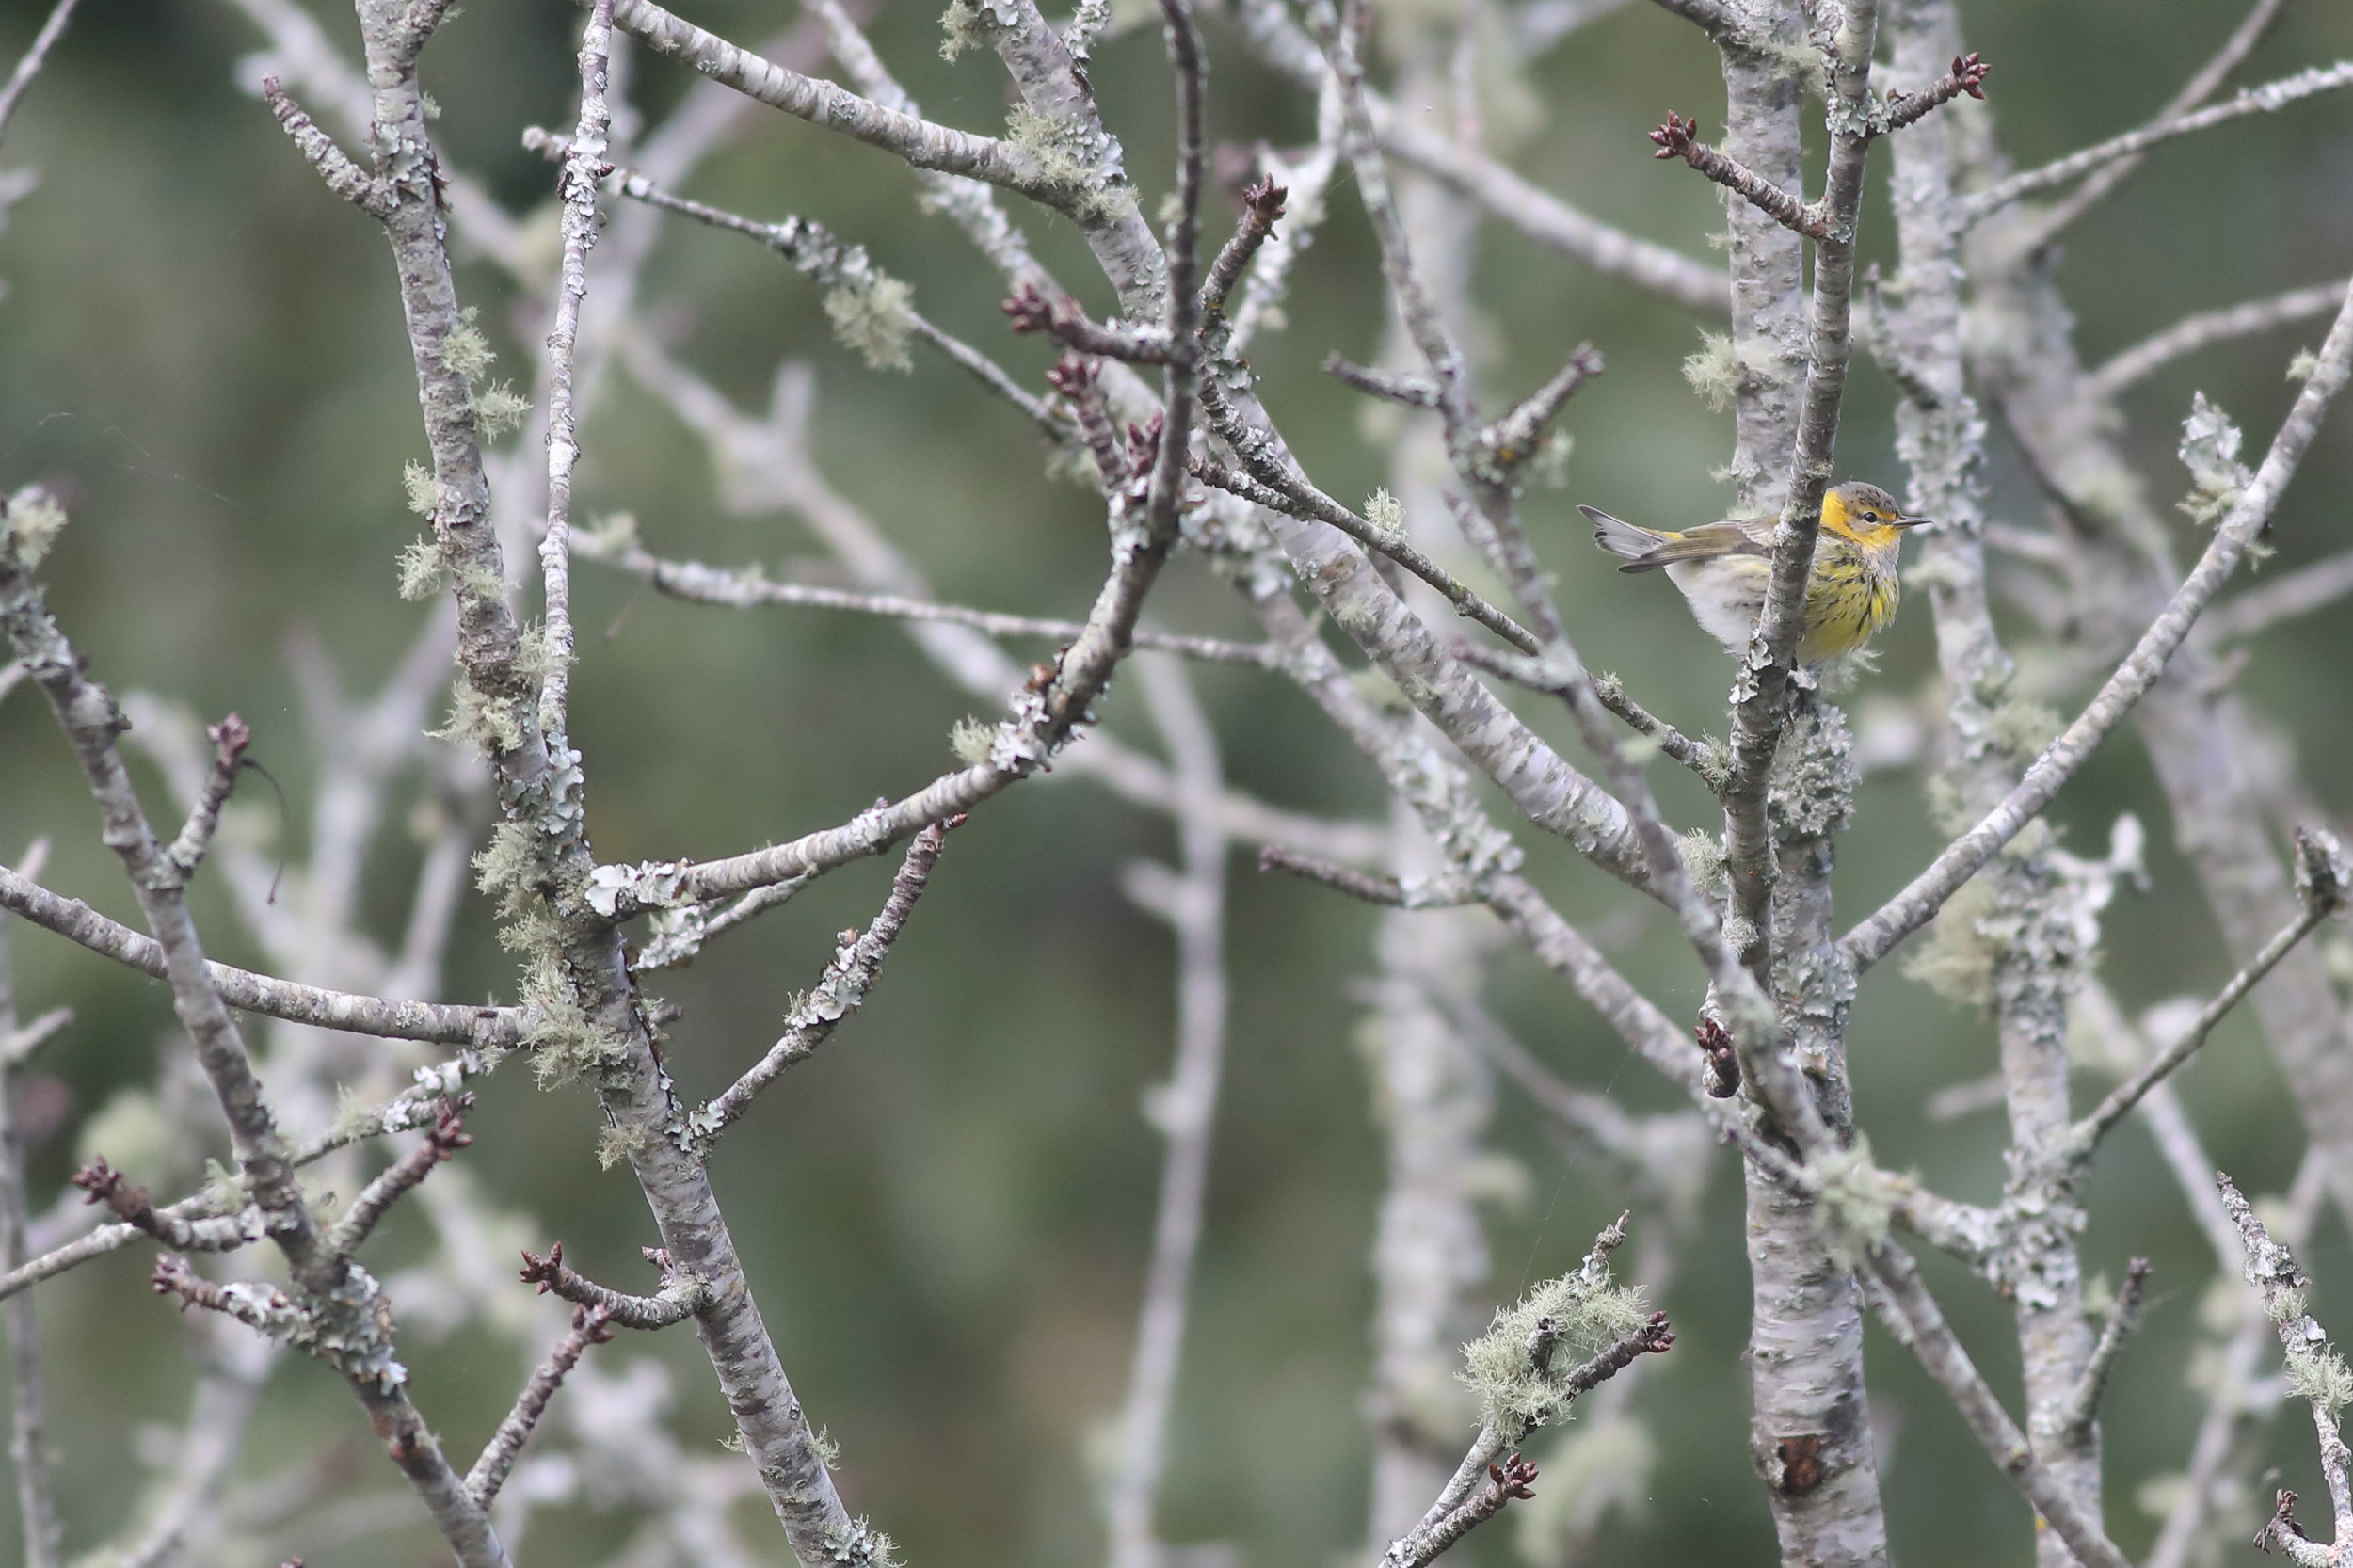 cape may warbler.JPG